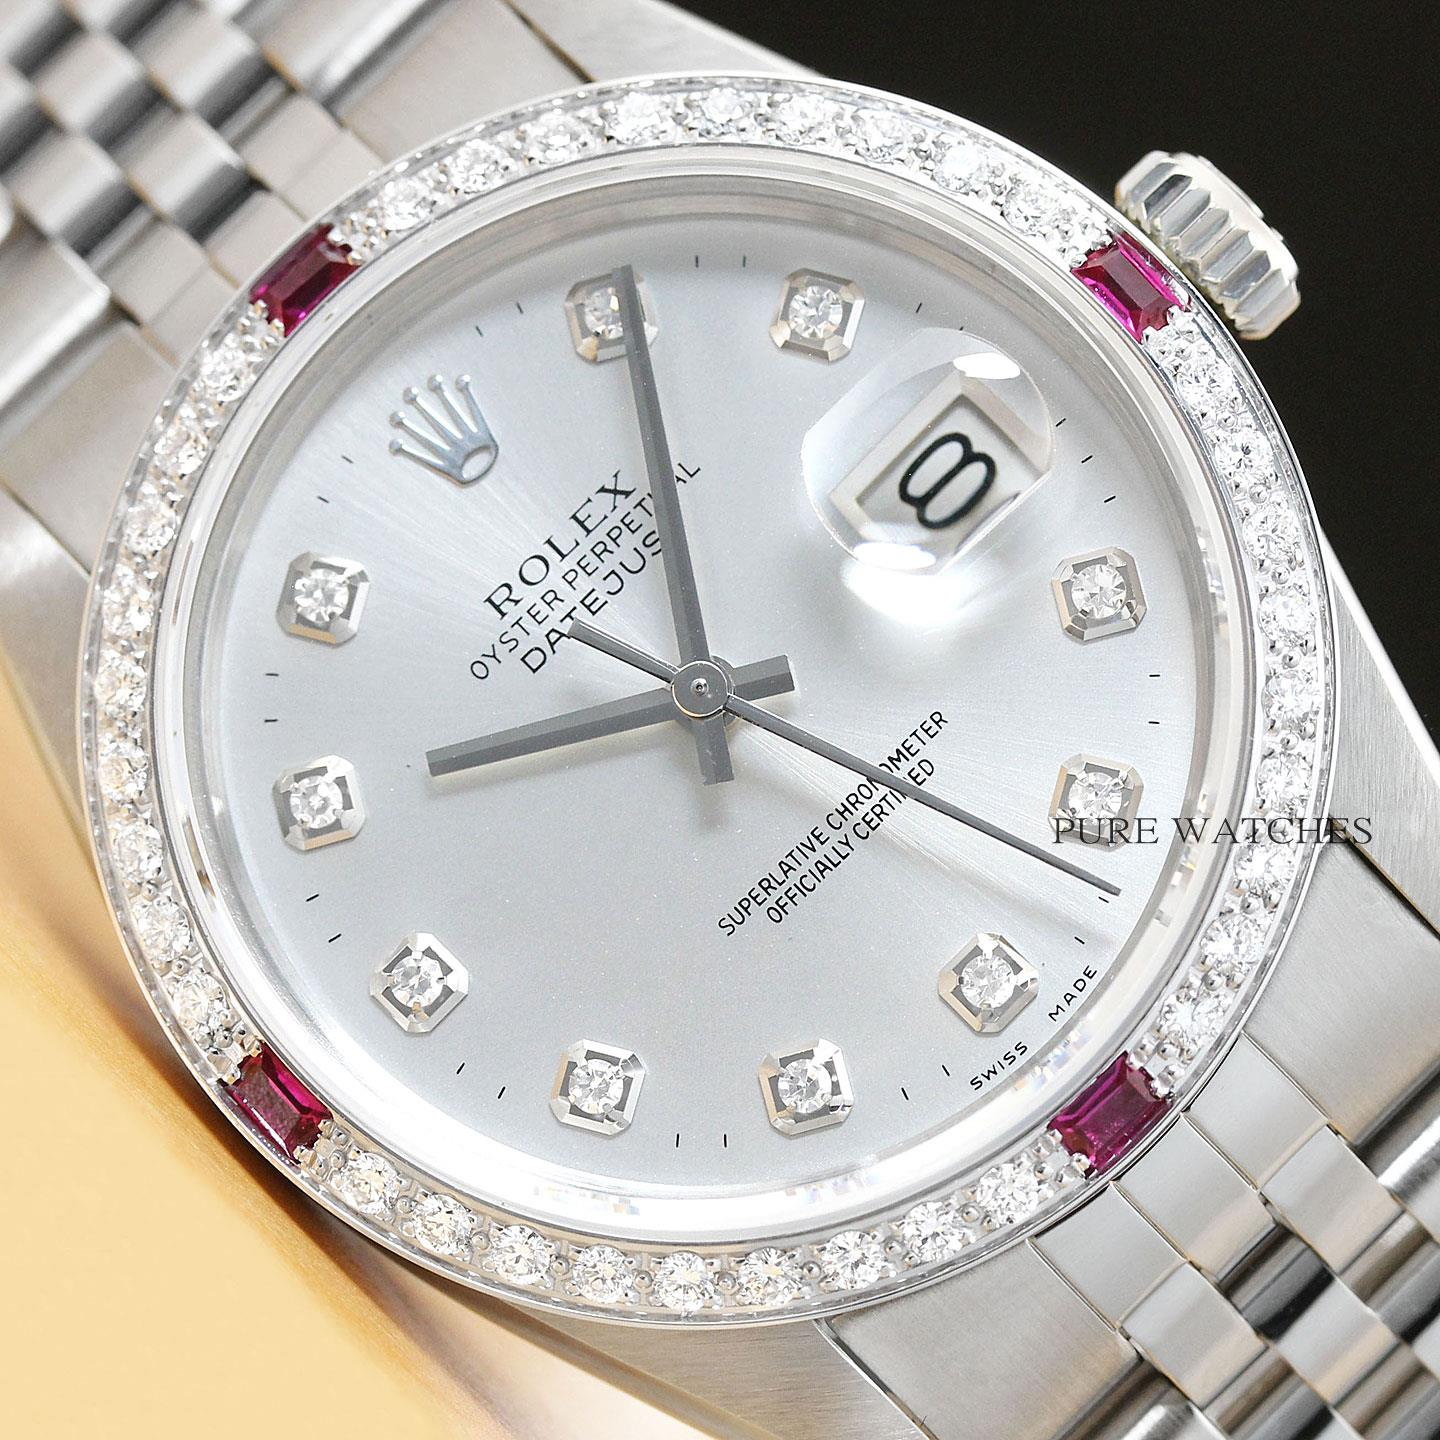 5eb68f14b2b This is an authentic Rolex watch with an original Rolex stainless steel  jubilee bracelet